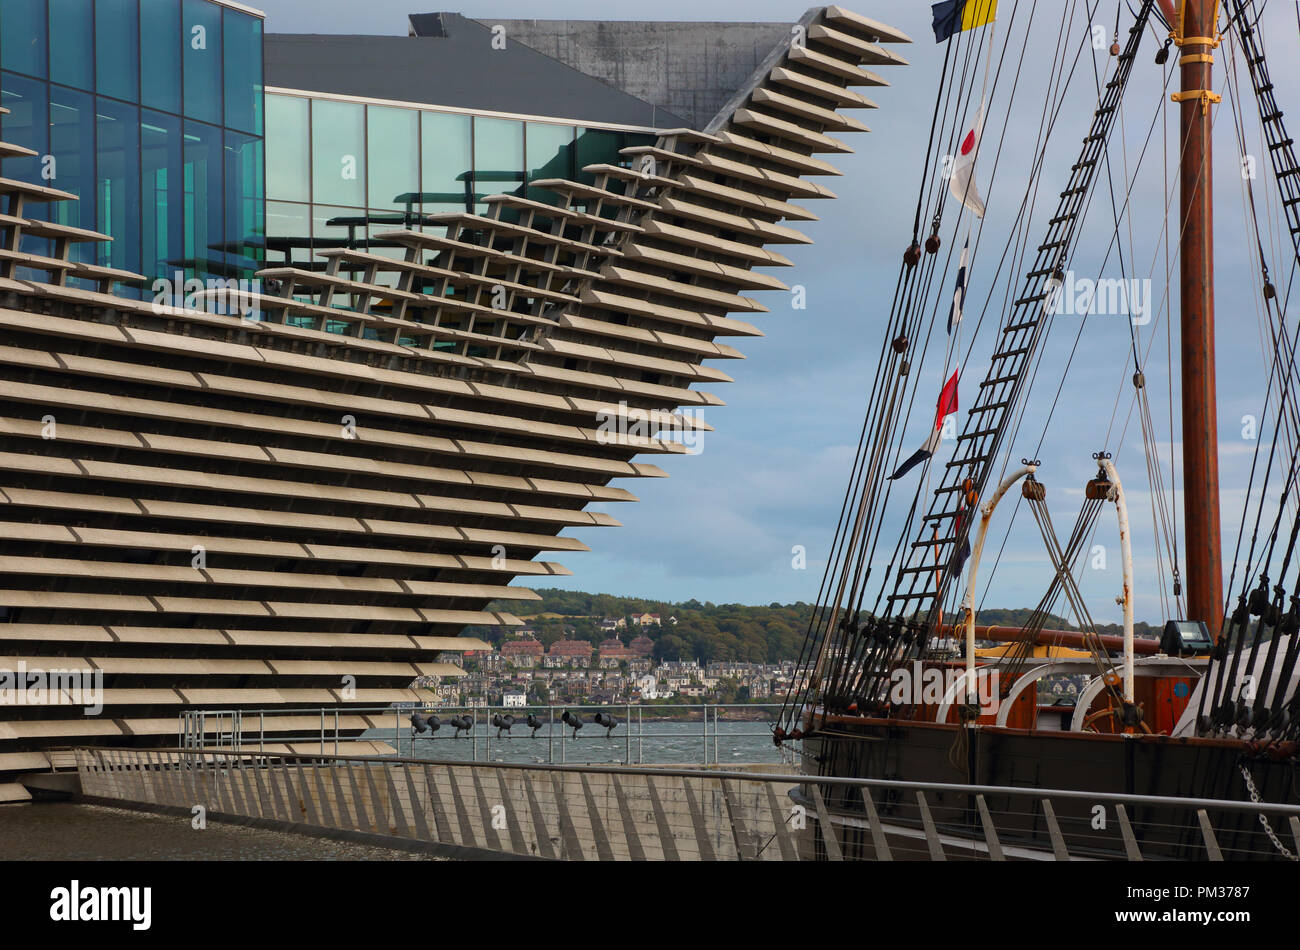 V&A Dundee,RSS Discovery - Stock Image